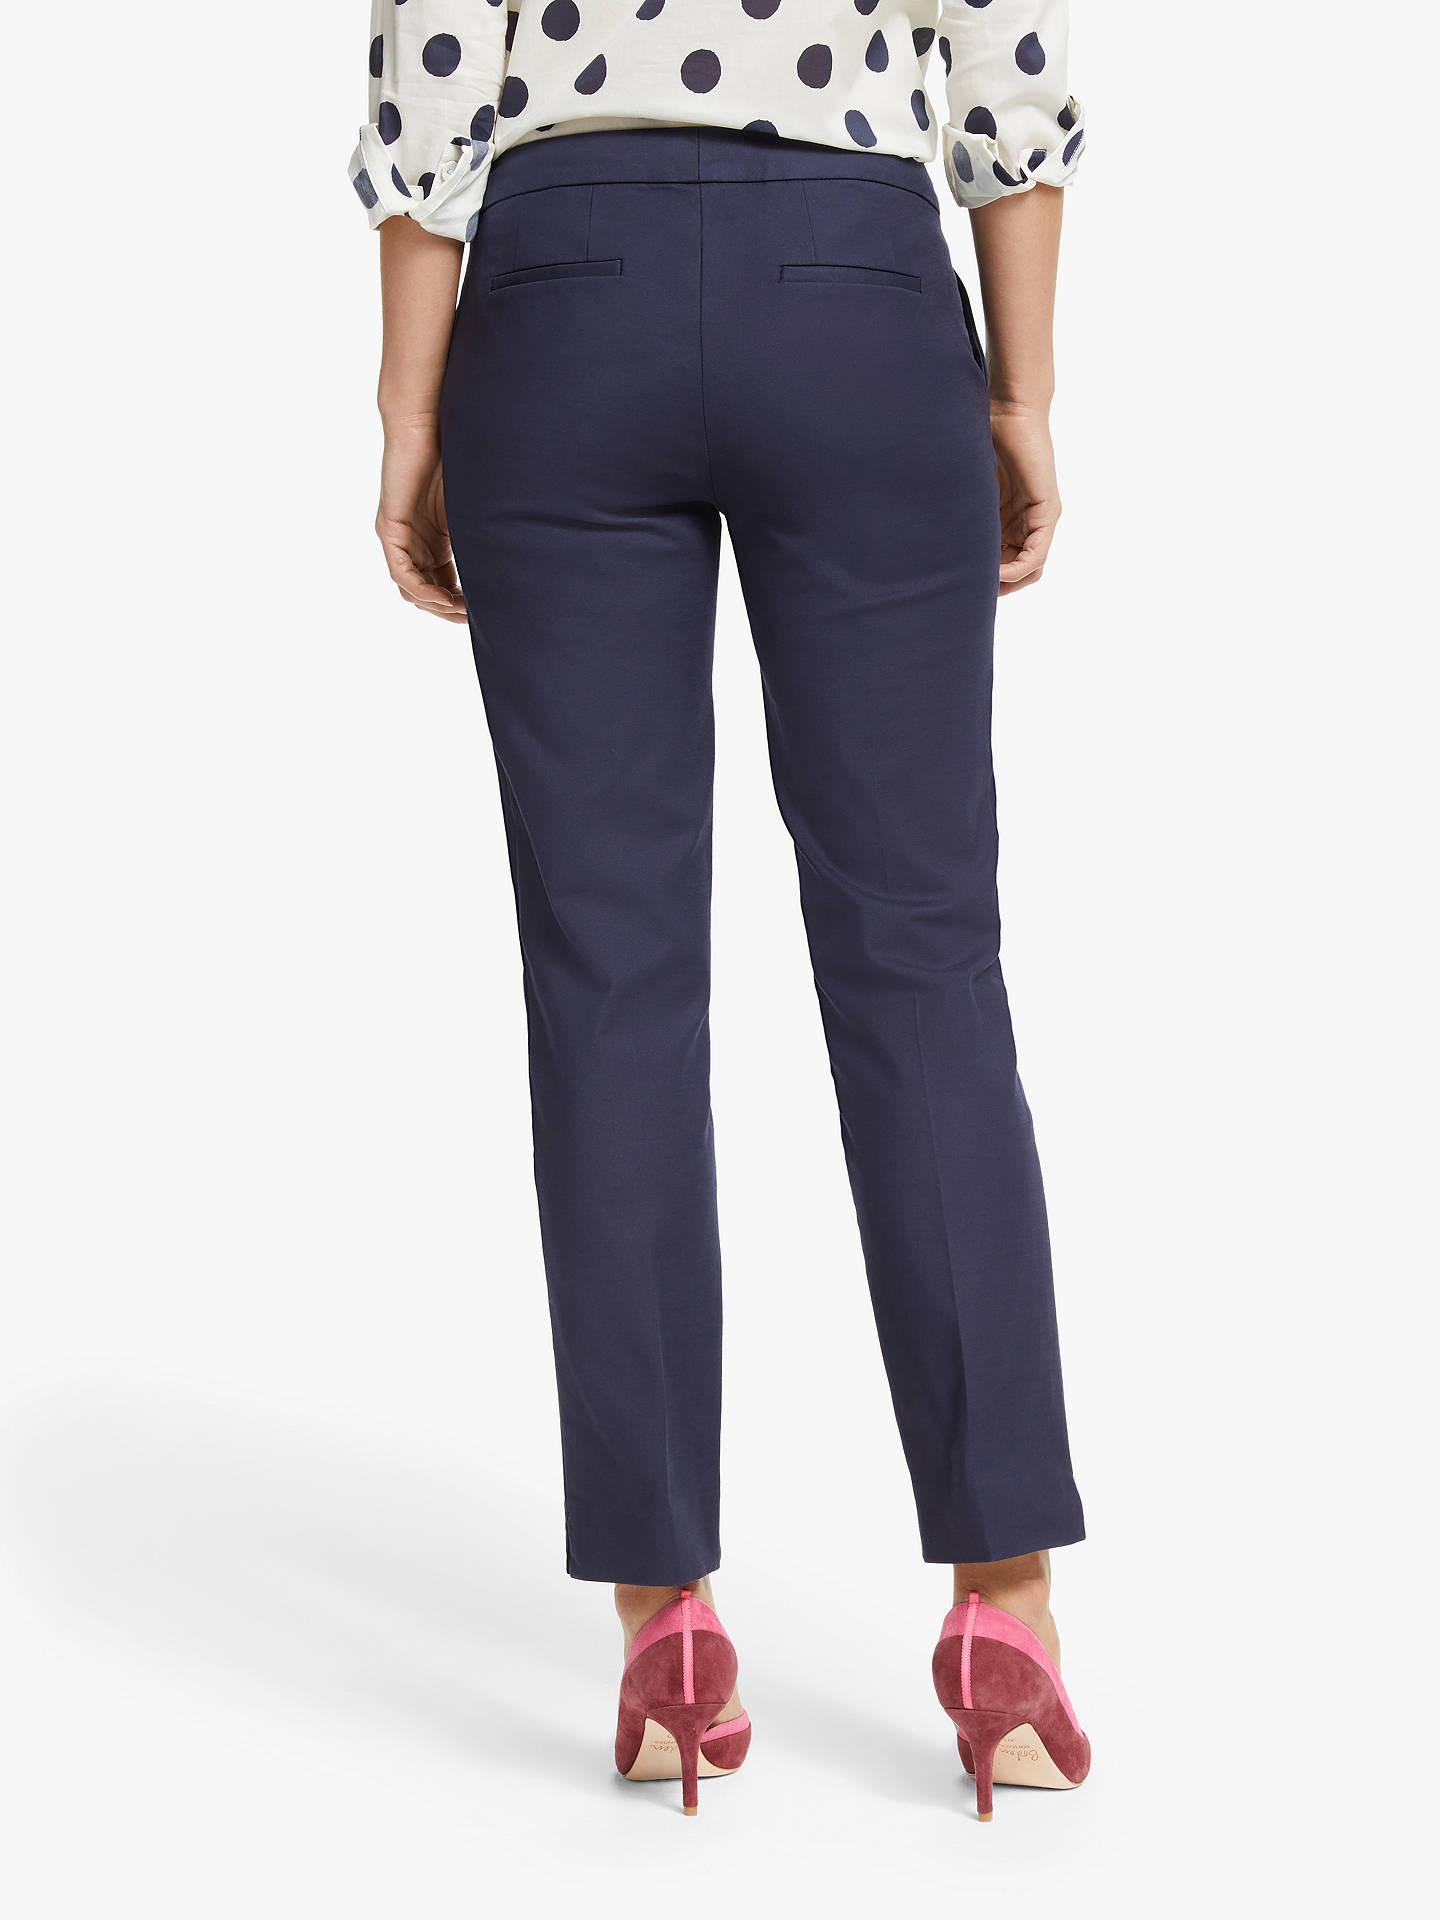 BuyBoden Richmond 7/8 Trousers, Navy, 8 Online at johnlewis.com